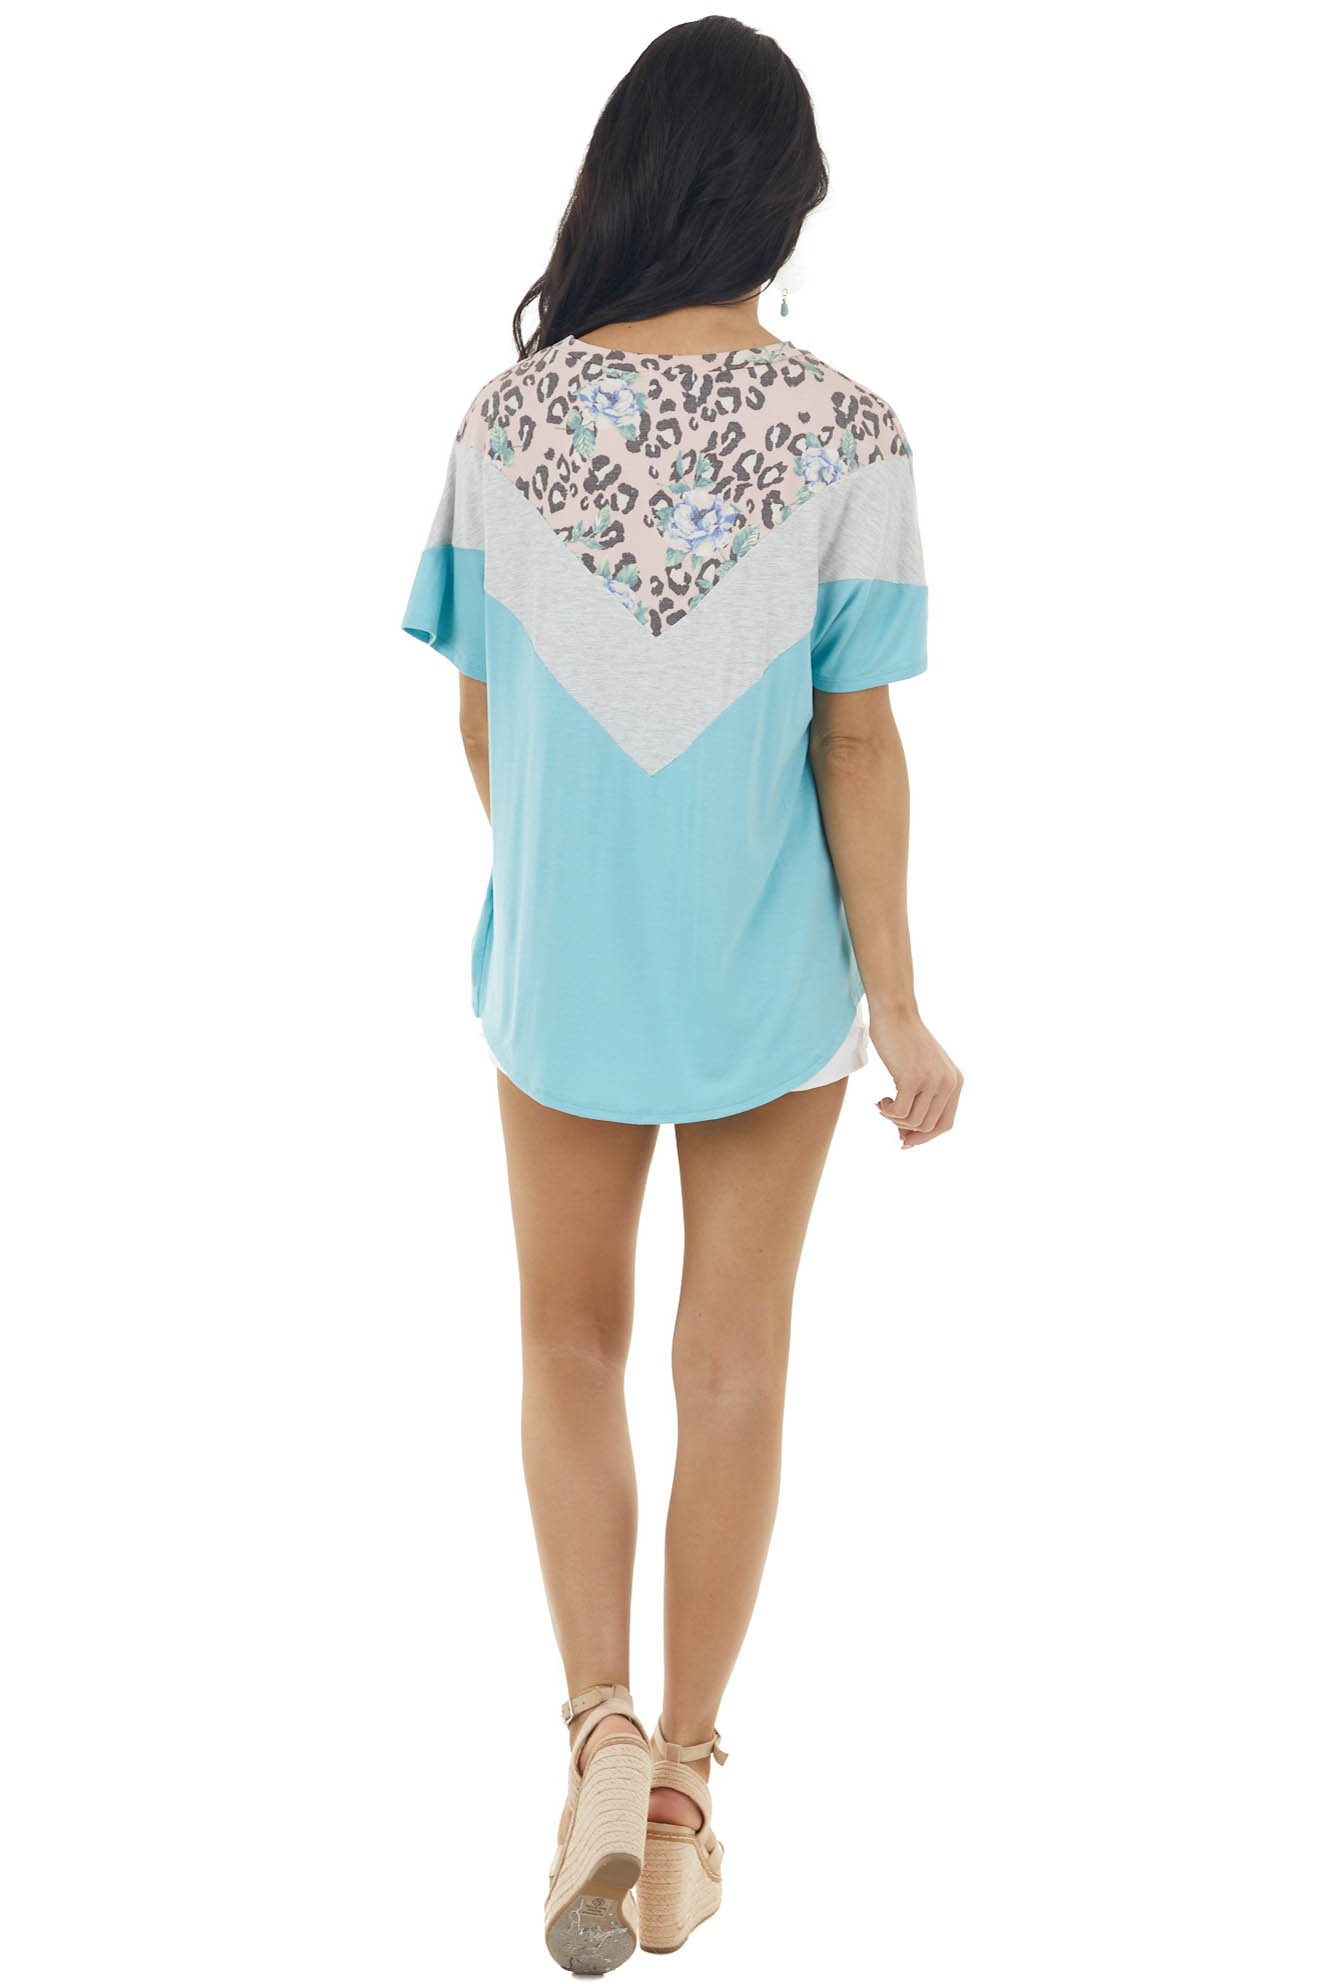 Turquoise and Dove Chevron Pattern Short Sleeve Knit Top